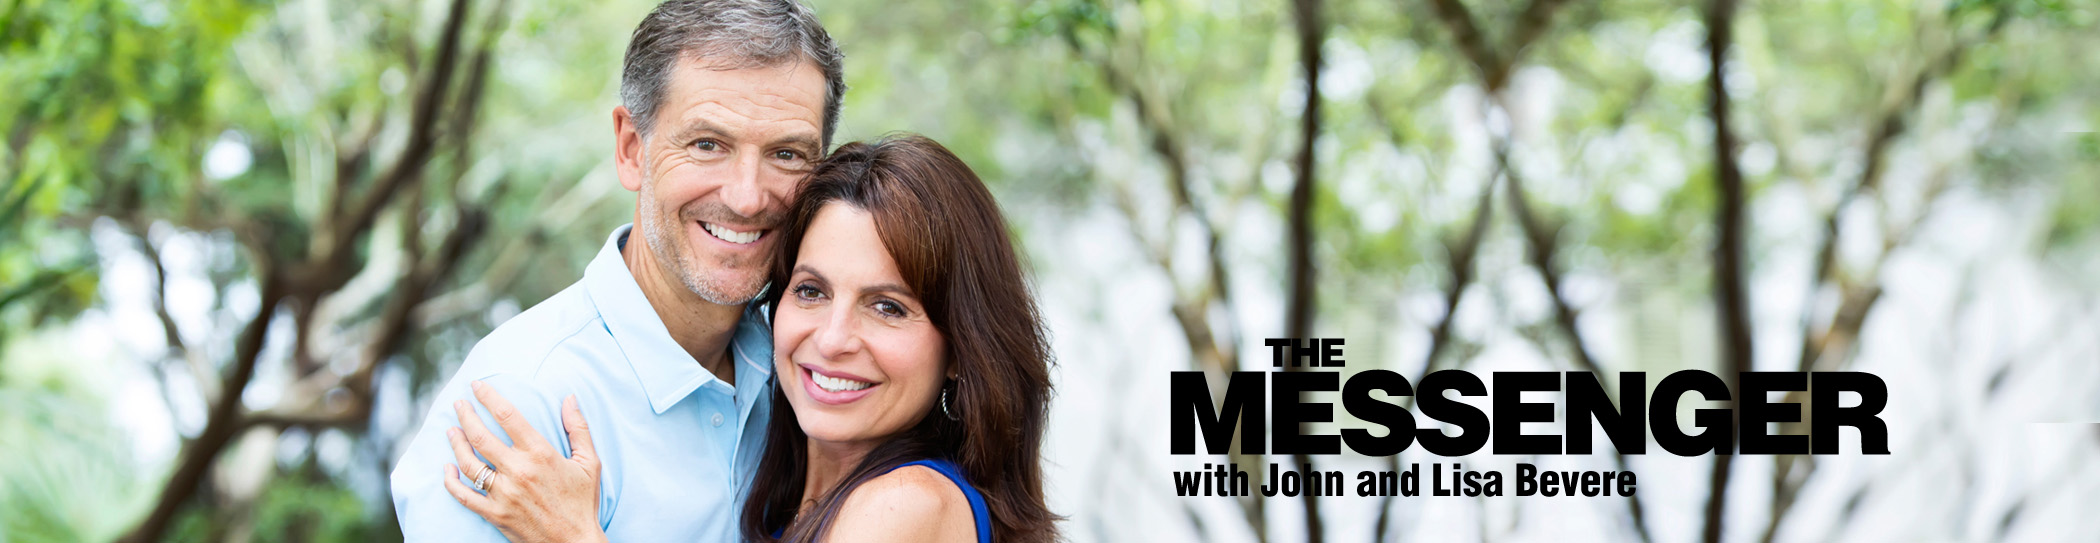 The Messenger with John and Lisa